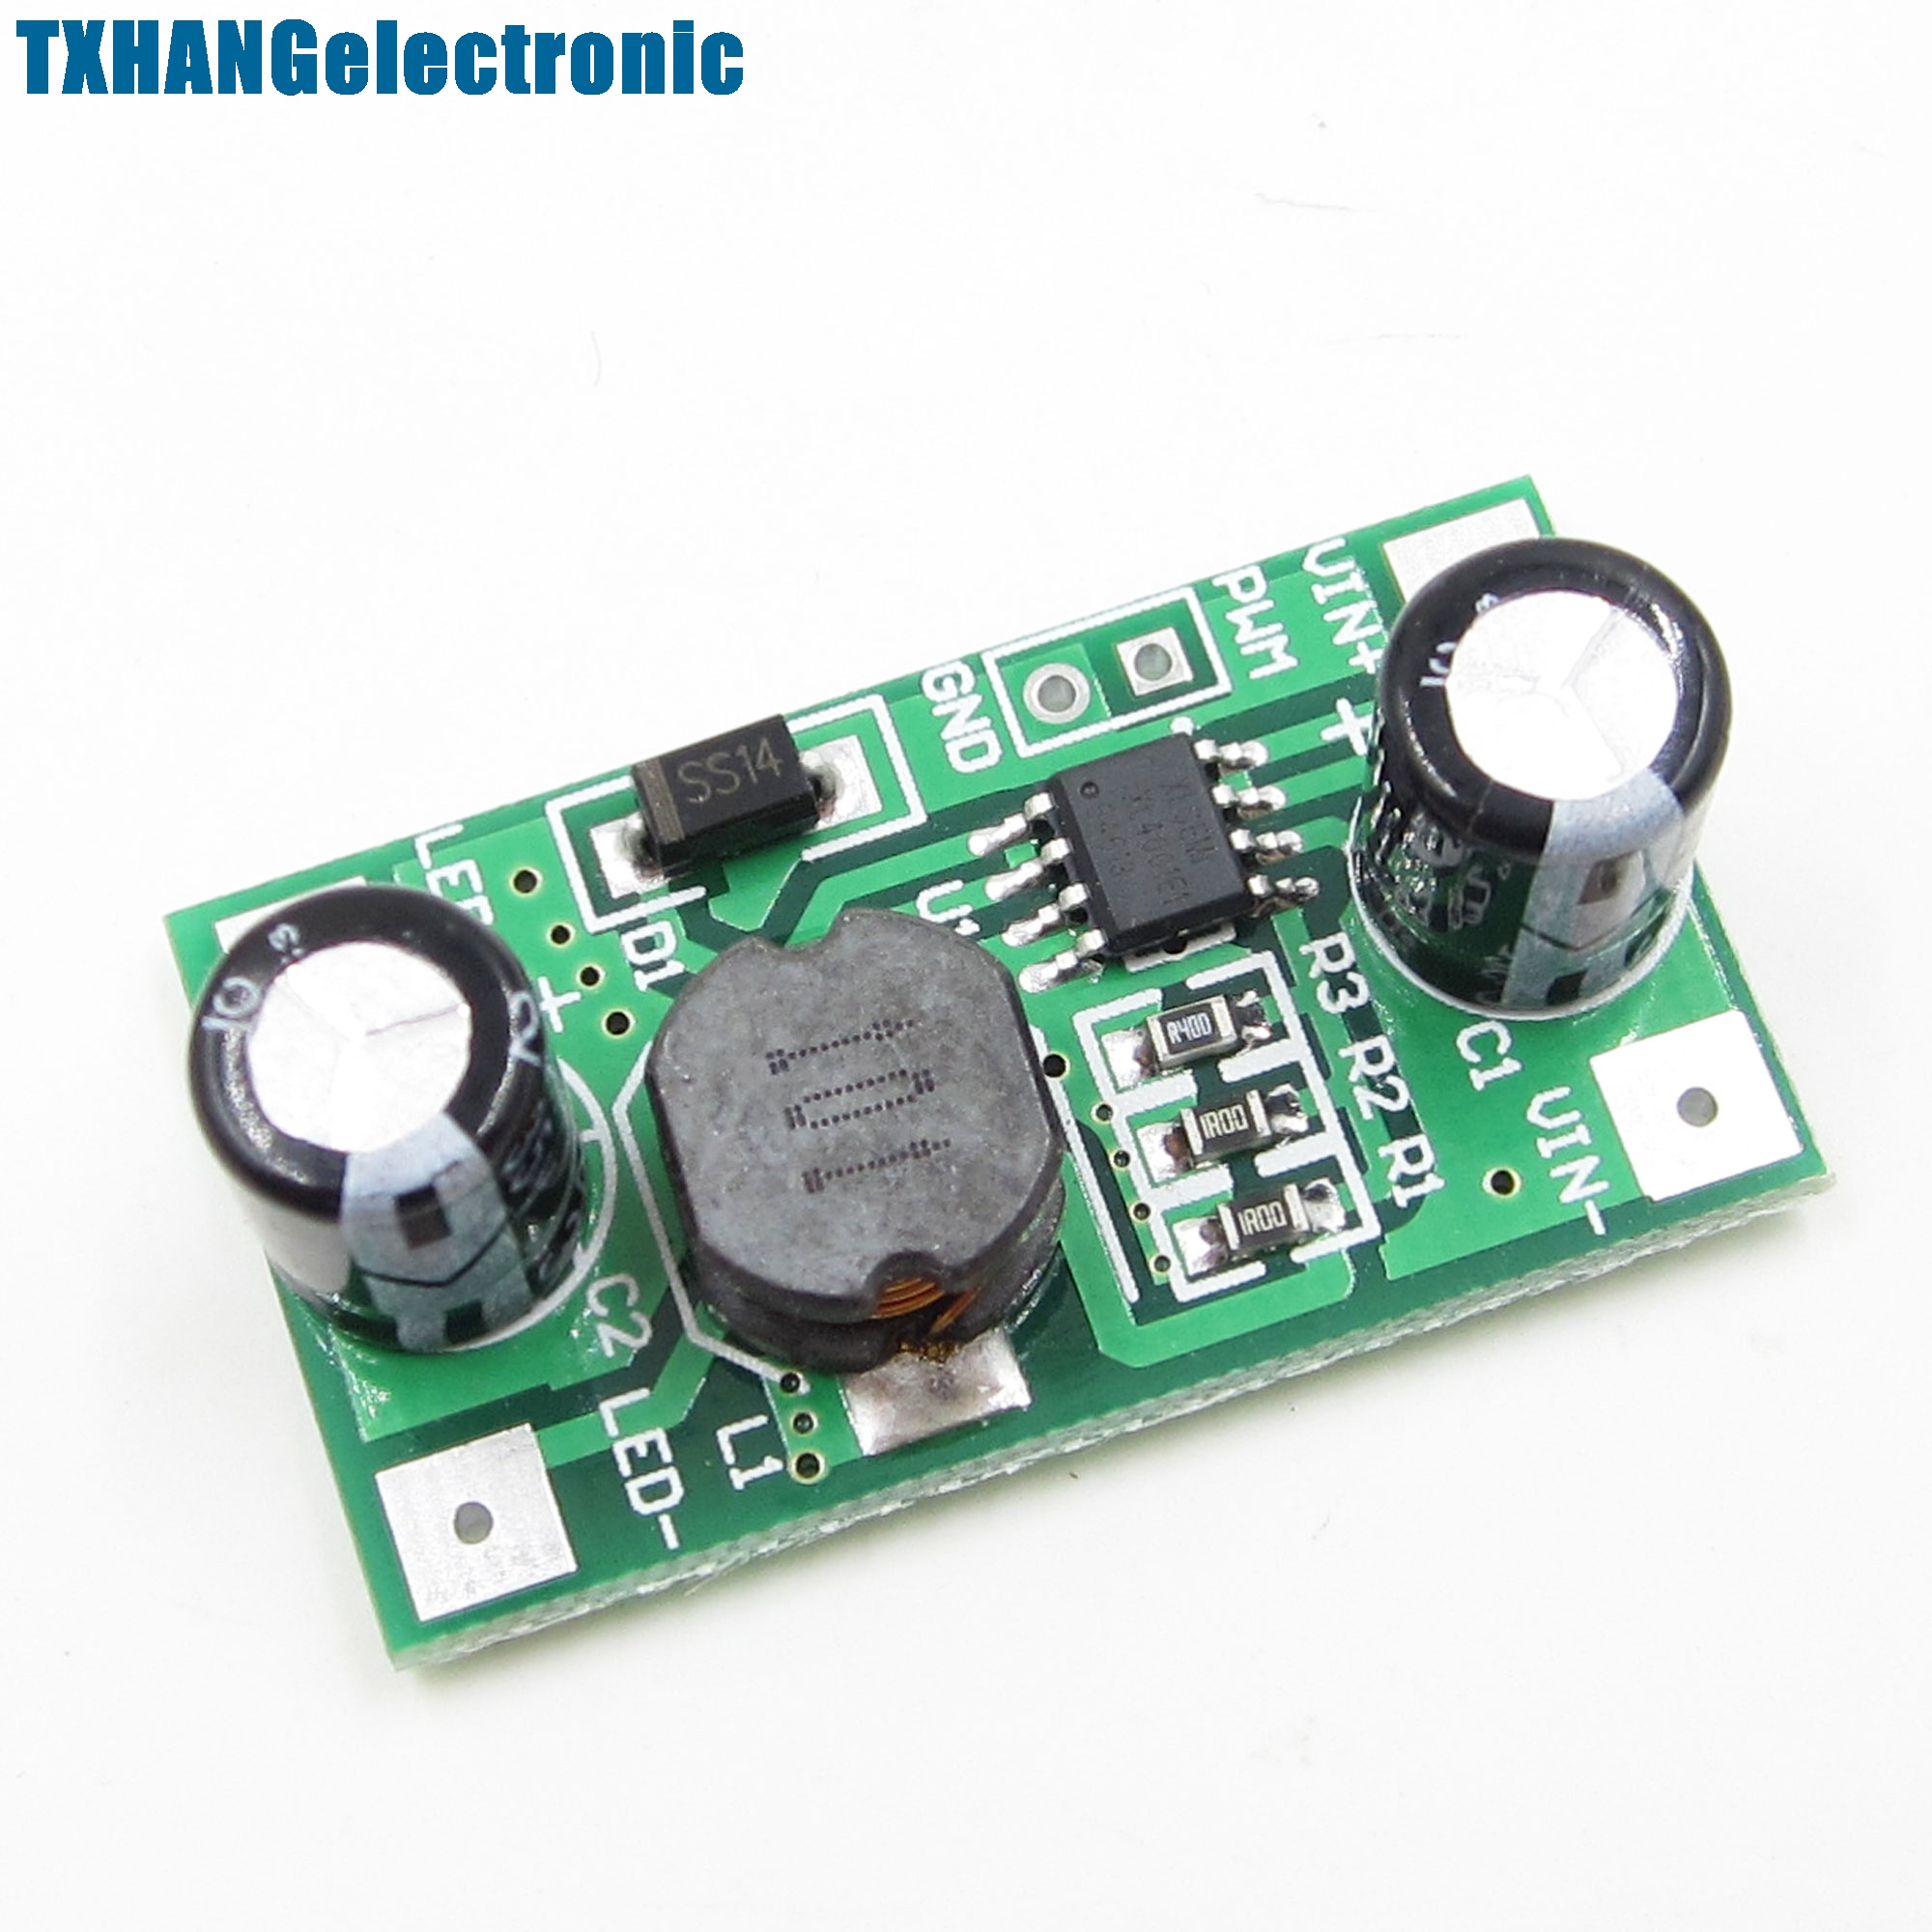 5-35V 3W 700Ma Pwm Dimming Dc To Dc Buck Step-Down Constant Current Led Driver